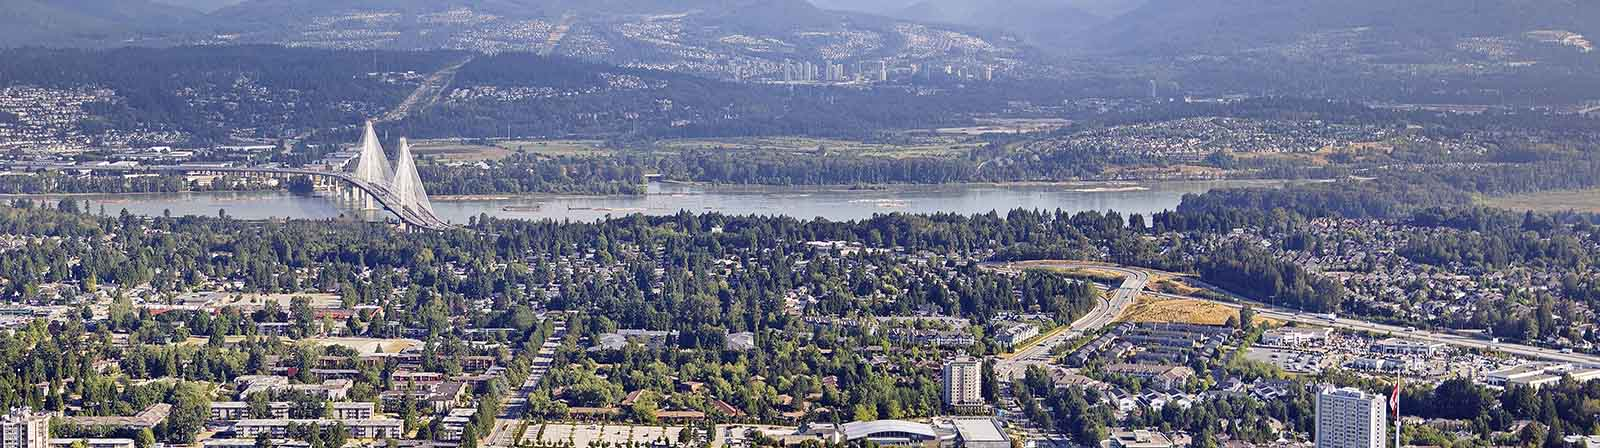 Aerial photograph overlooking the Port Mann bridge and the Fraser River with Surrey in the foreground.